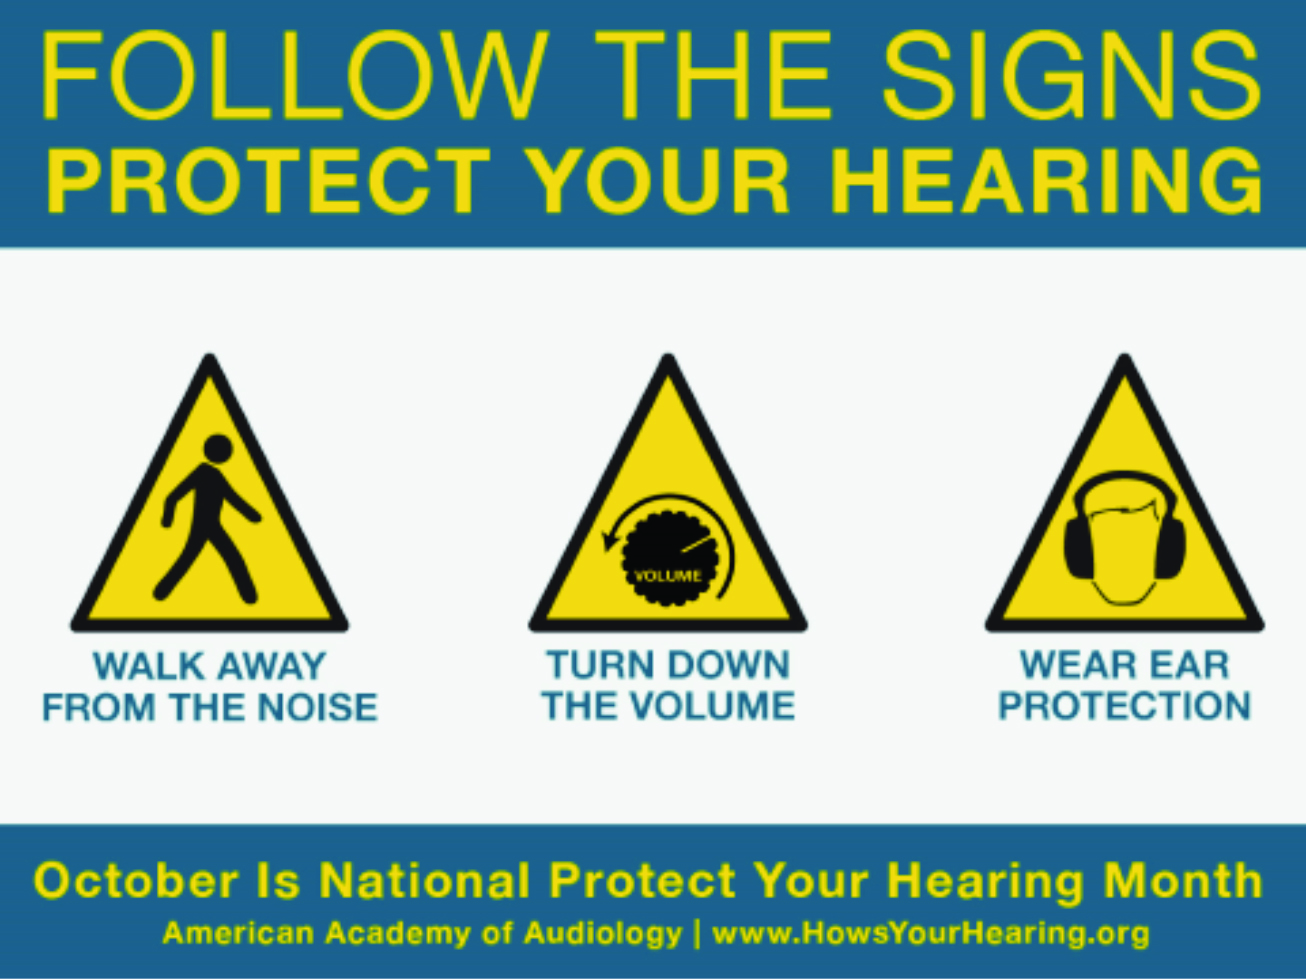 Protect your hearing month